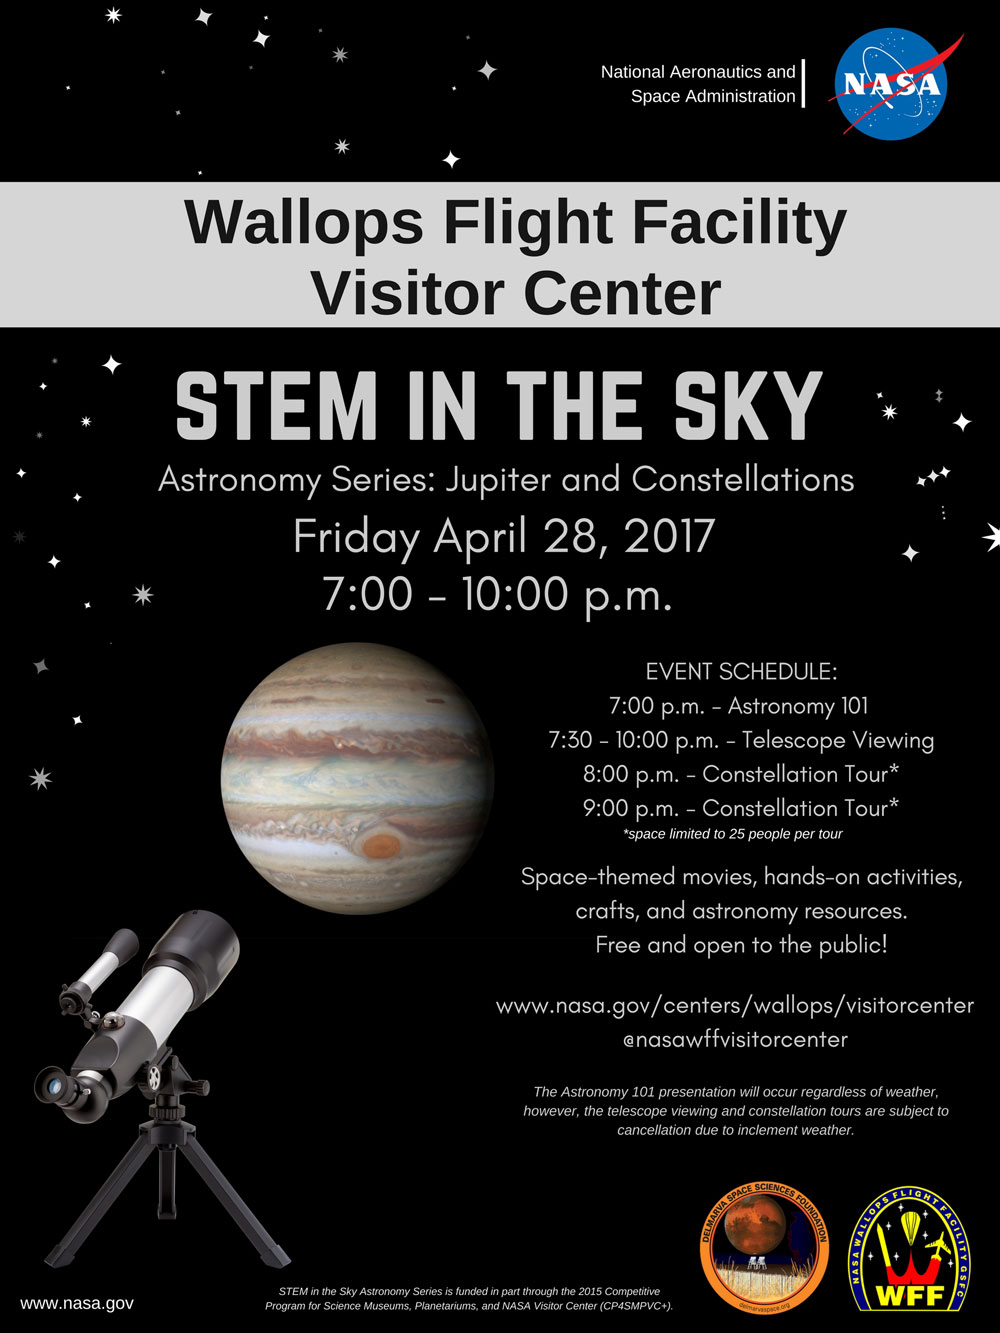 stem-in-the-sky-astronomy-series-jupiter-and-constellations_04.28.17